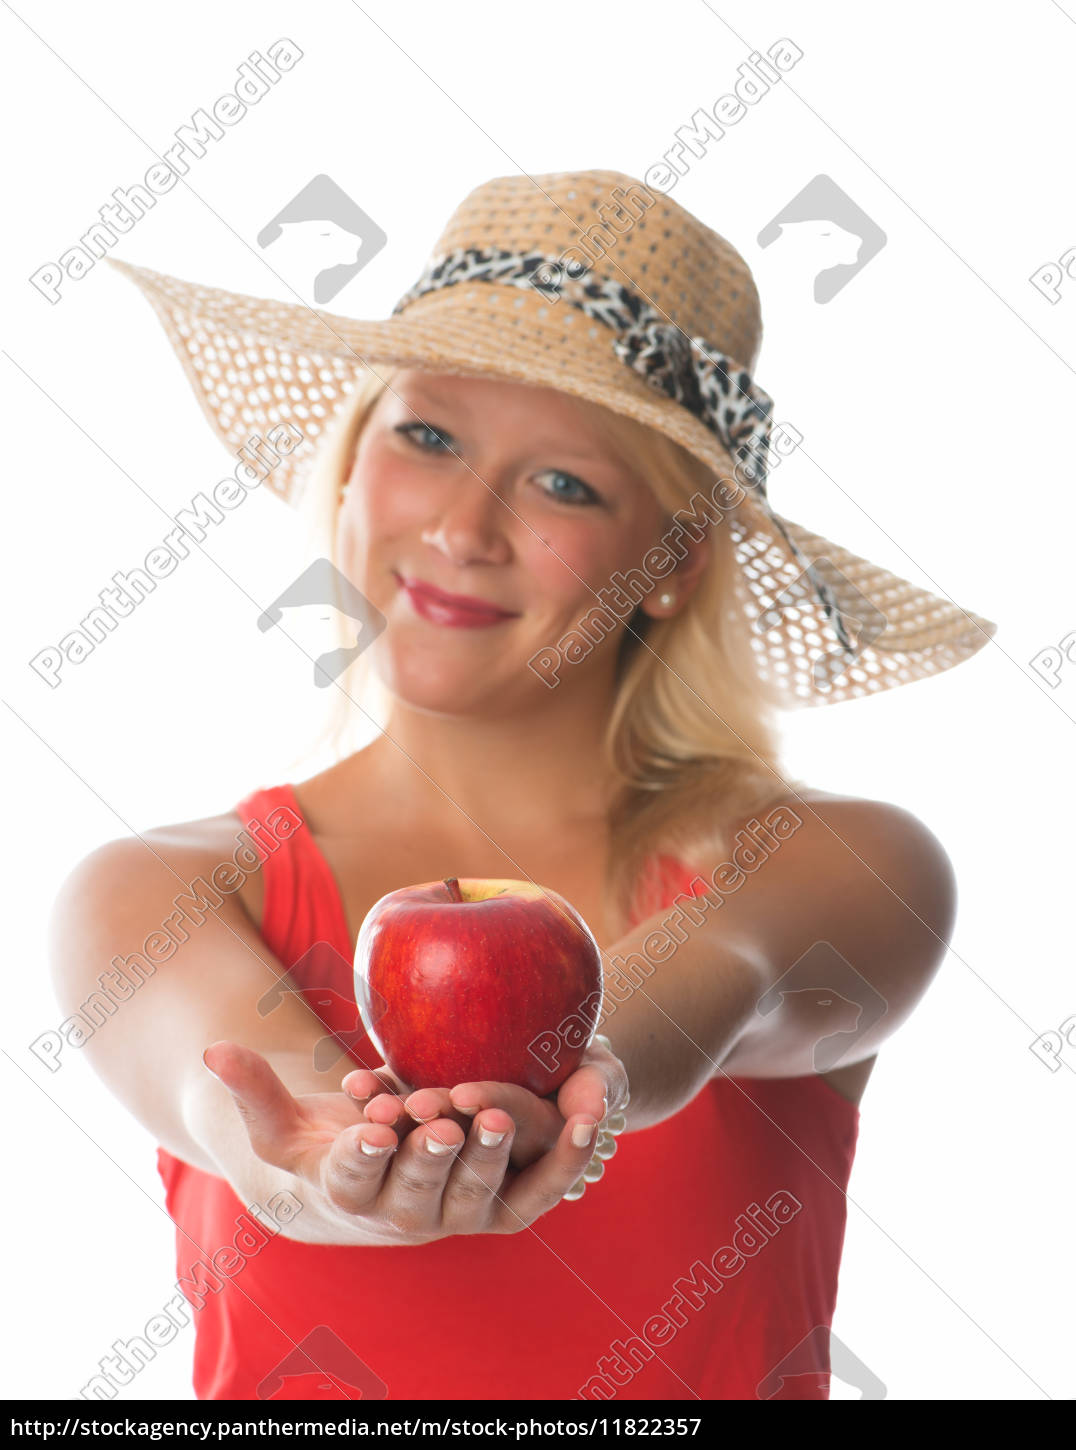 blond, woman, holding, a, red, apple - 11822357